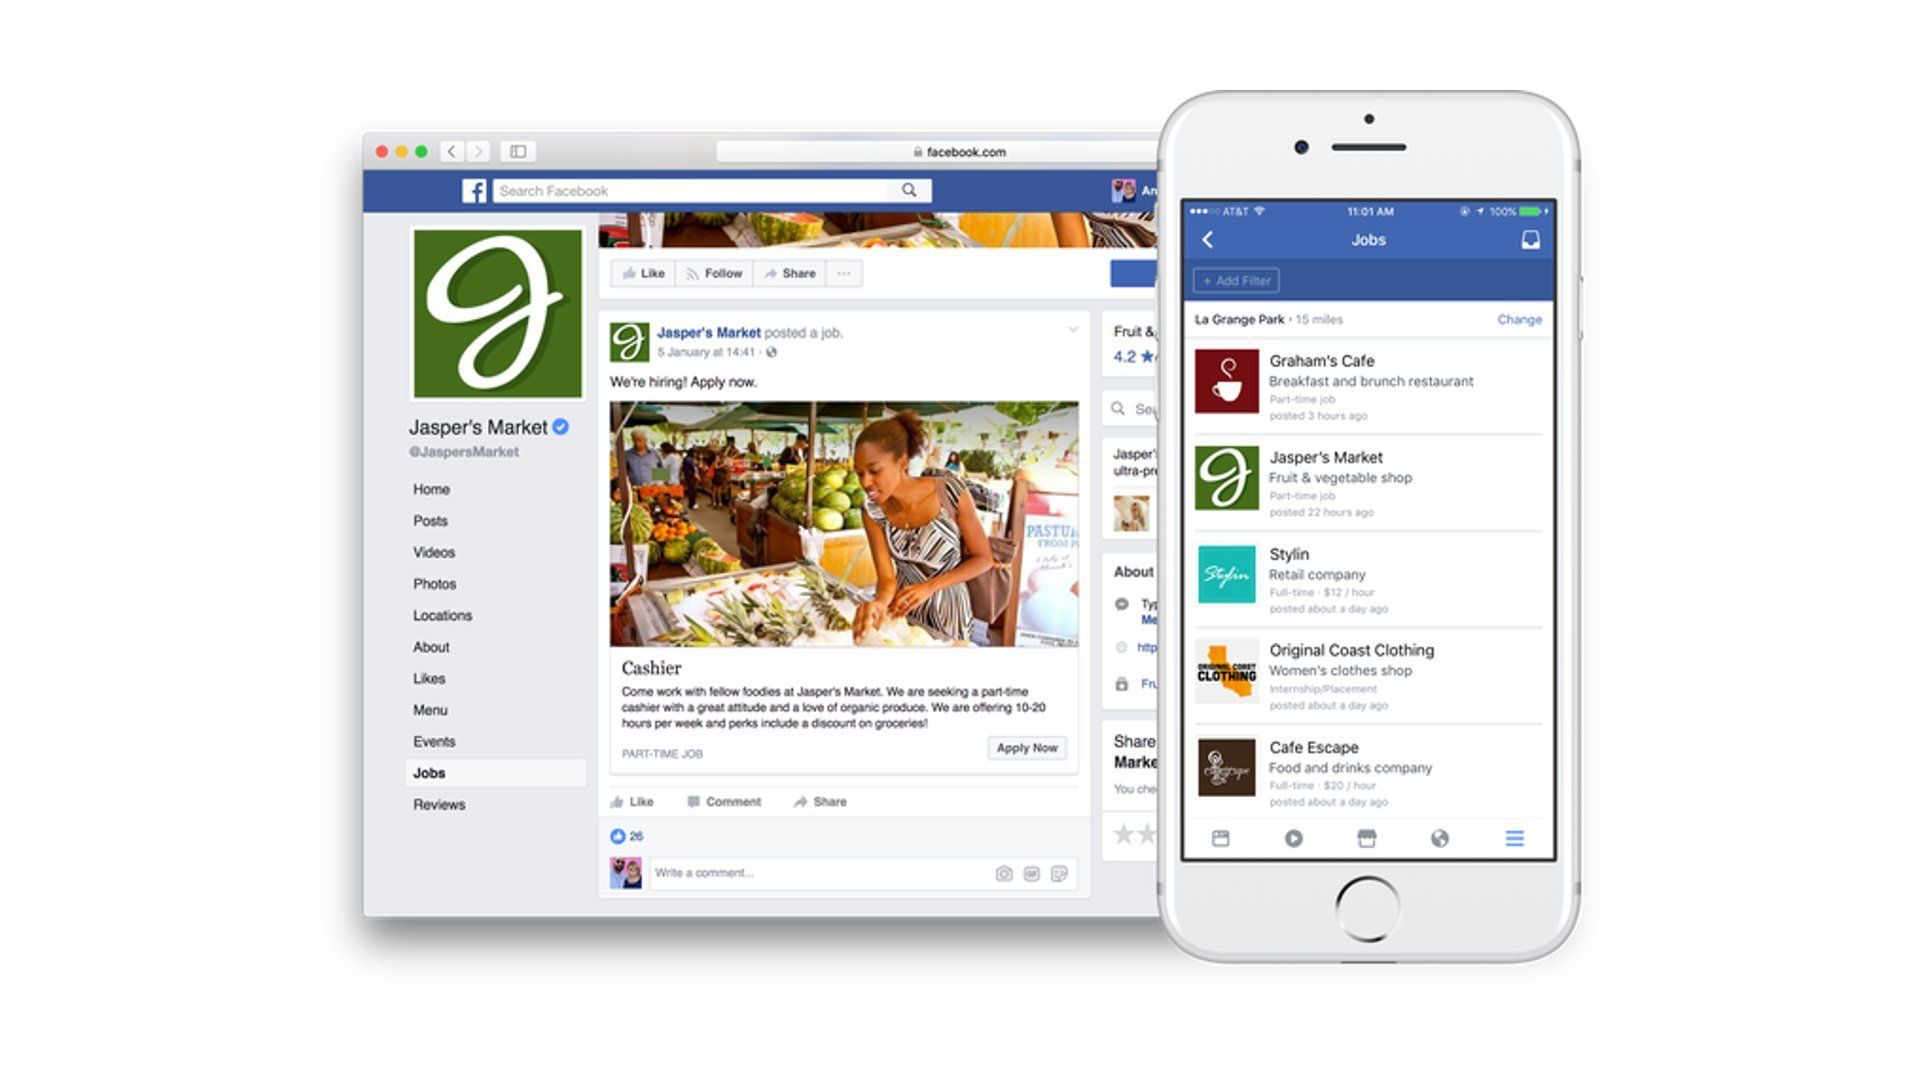 Facebook Jobs - Desktop & Mobile Experience